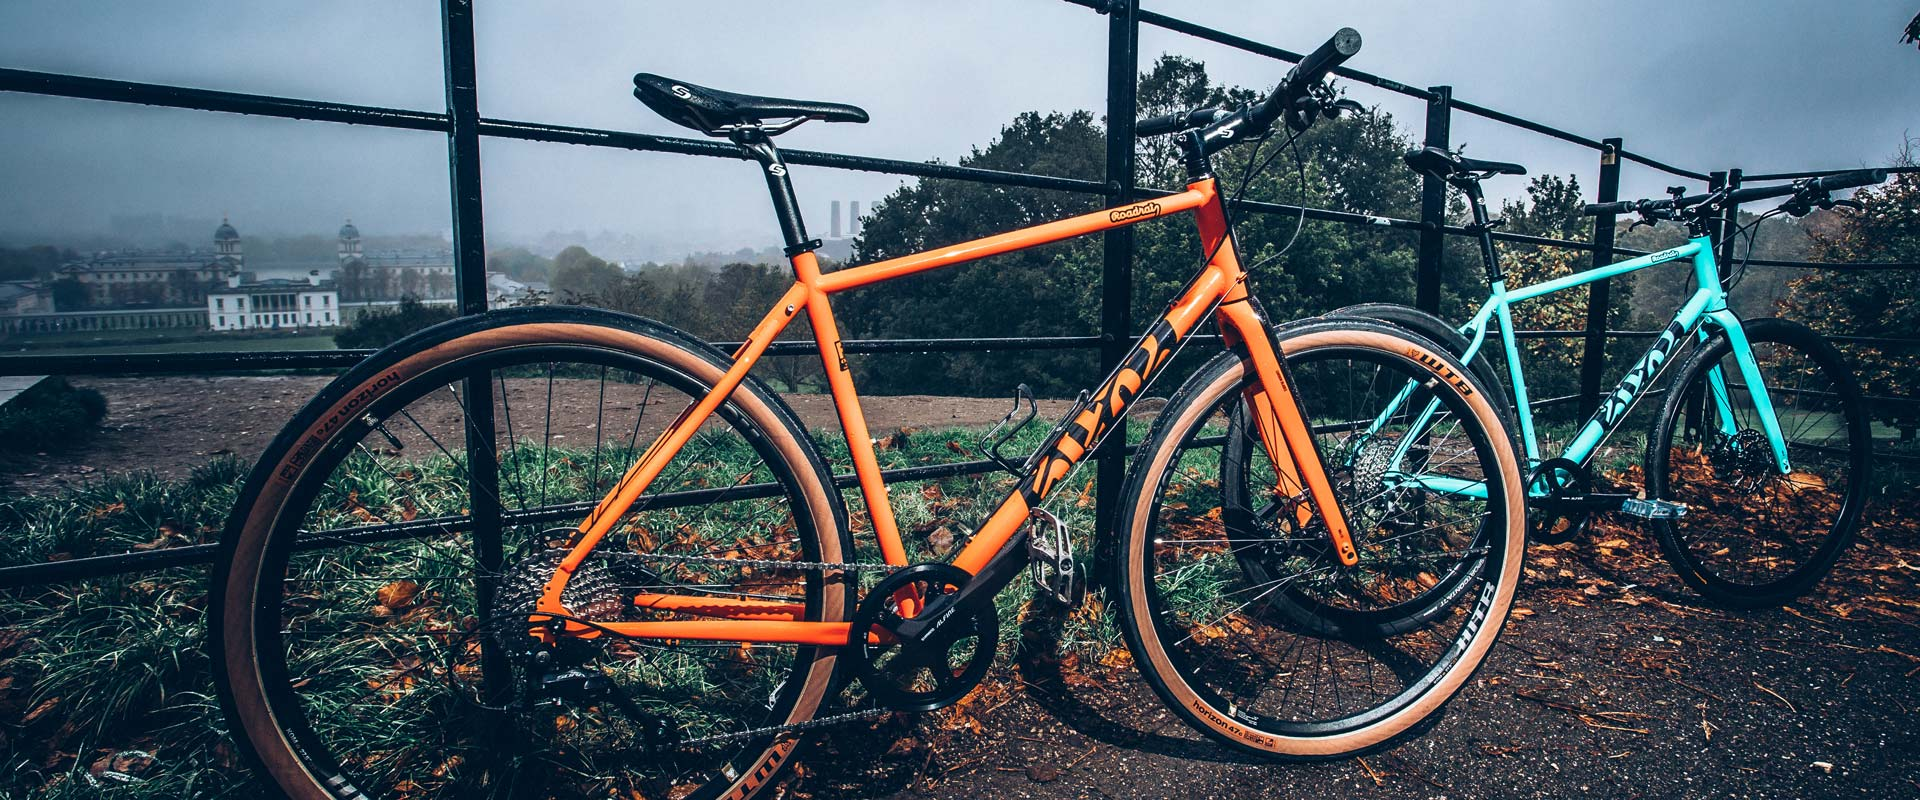 the Product of COTIC cycles : Roadrat, for commuting